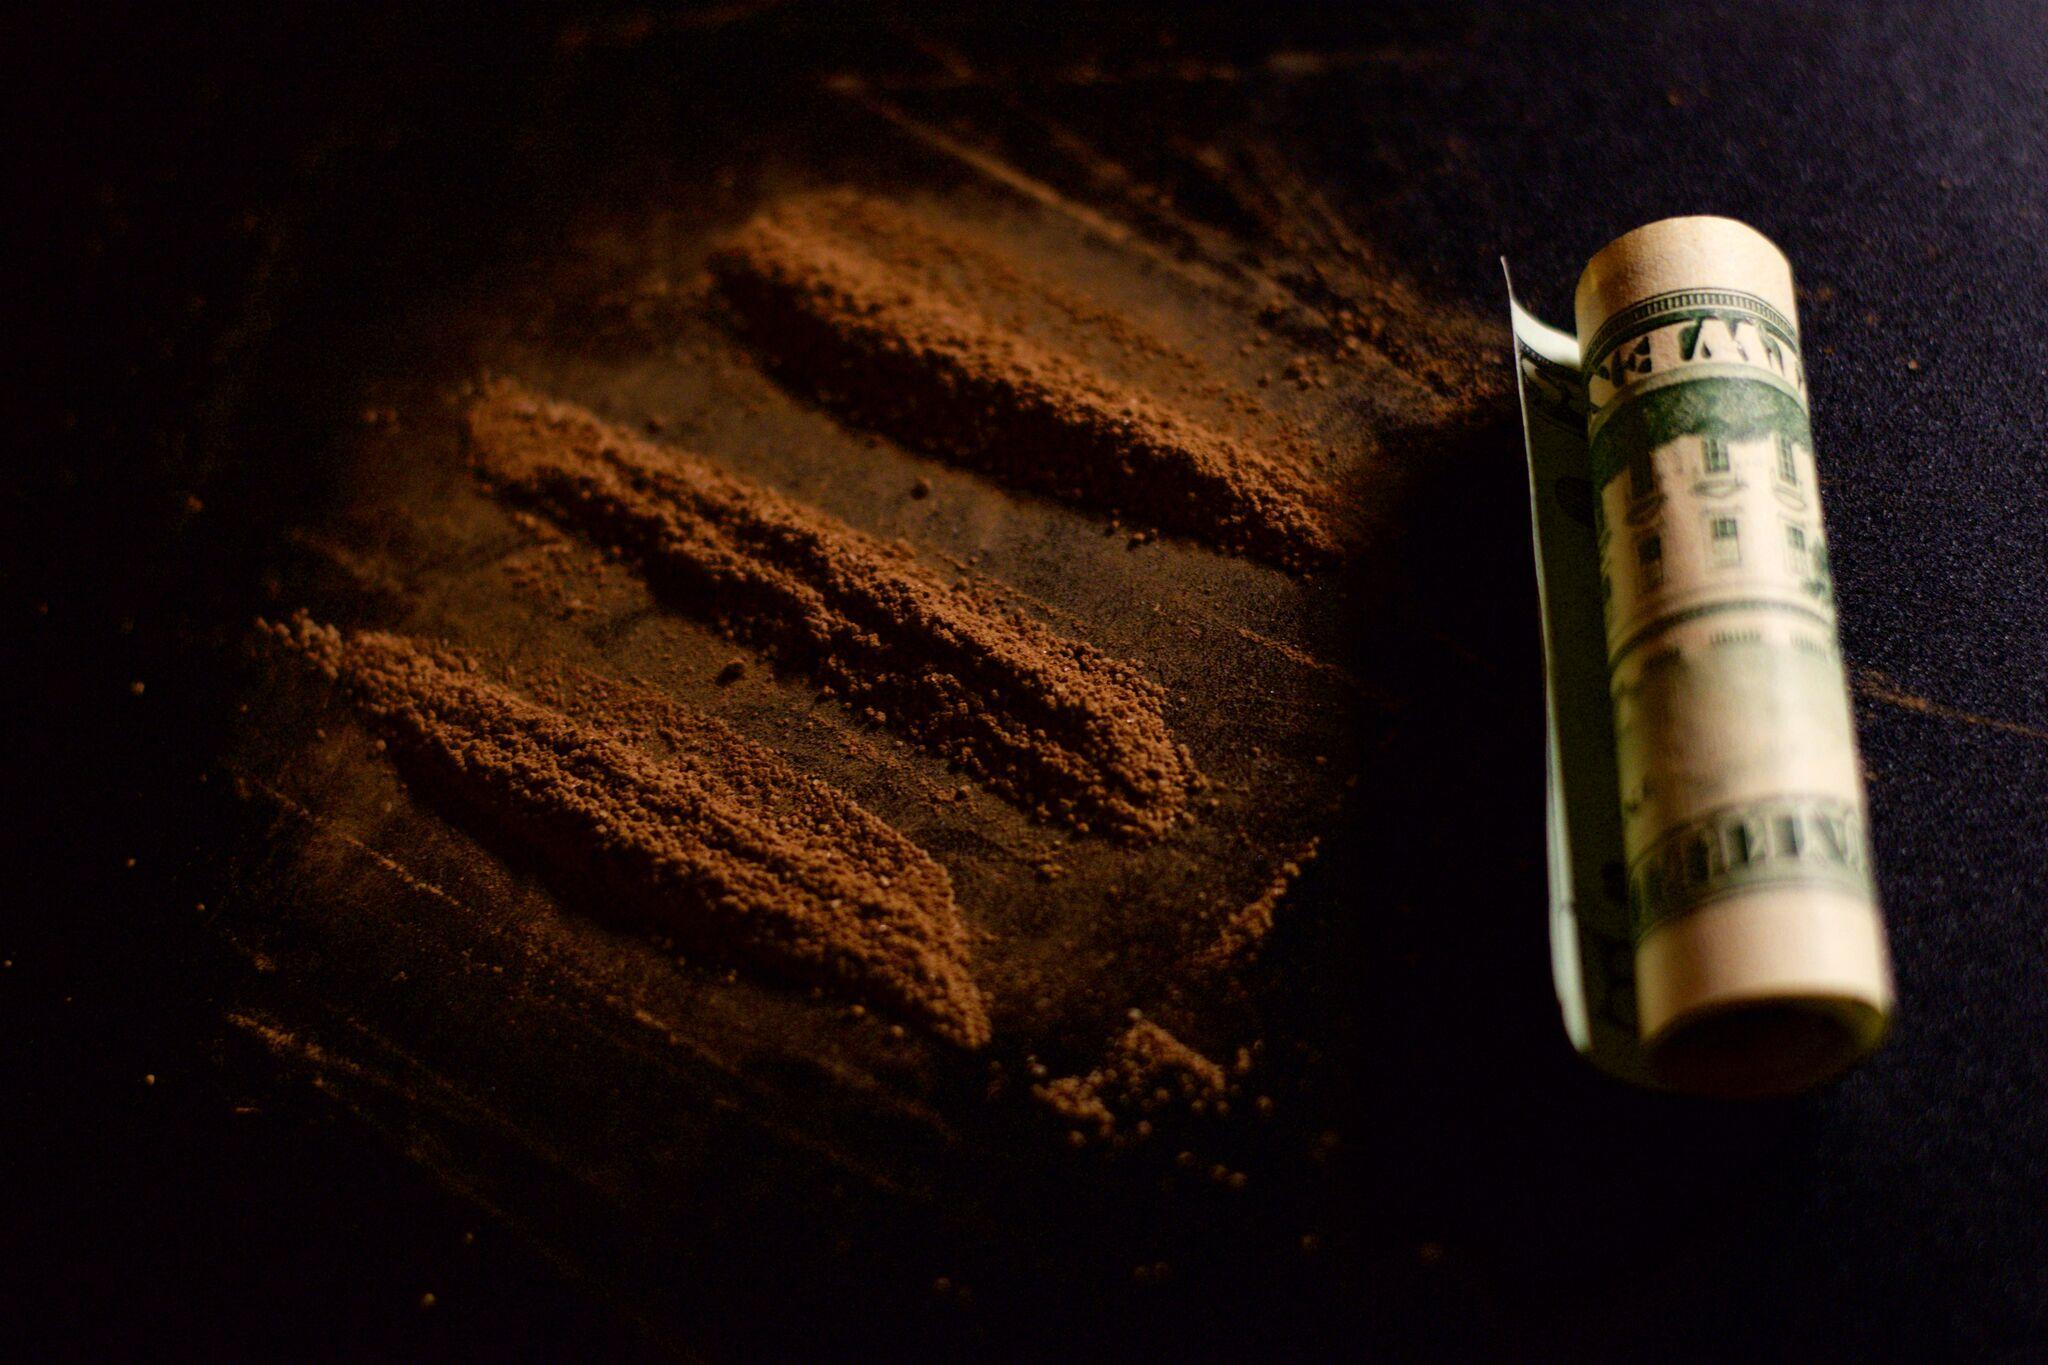 The snorting of raw cacao has revealed itself to be as a surprising new form of legal high.